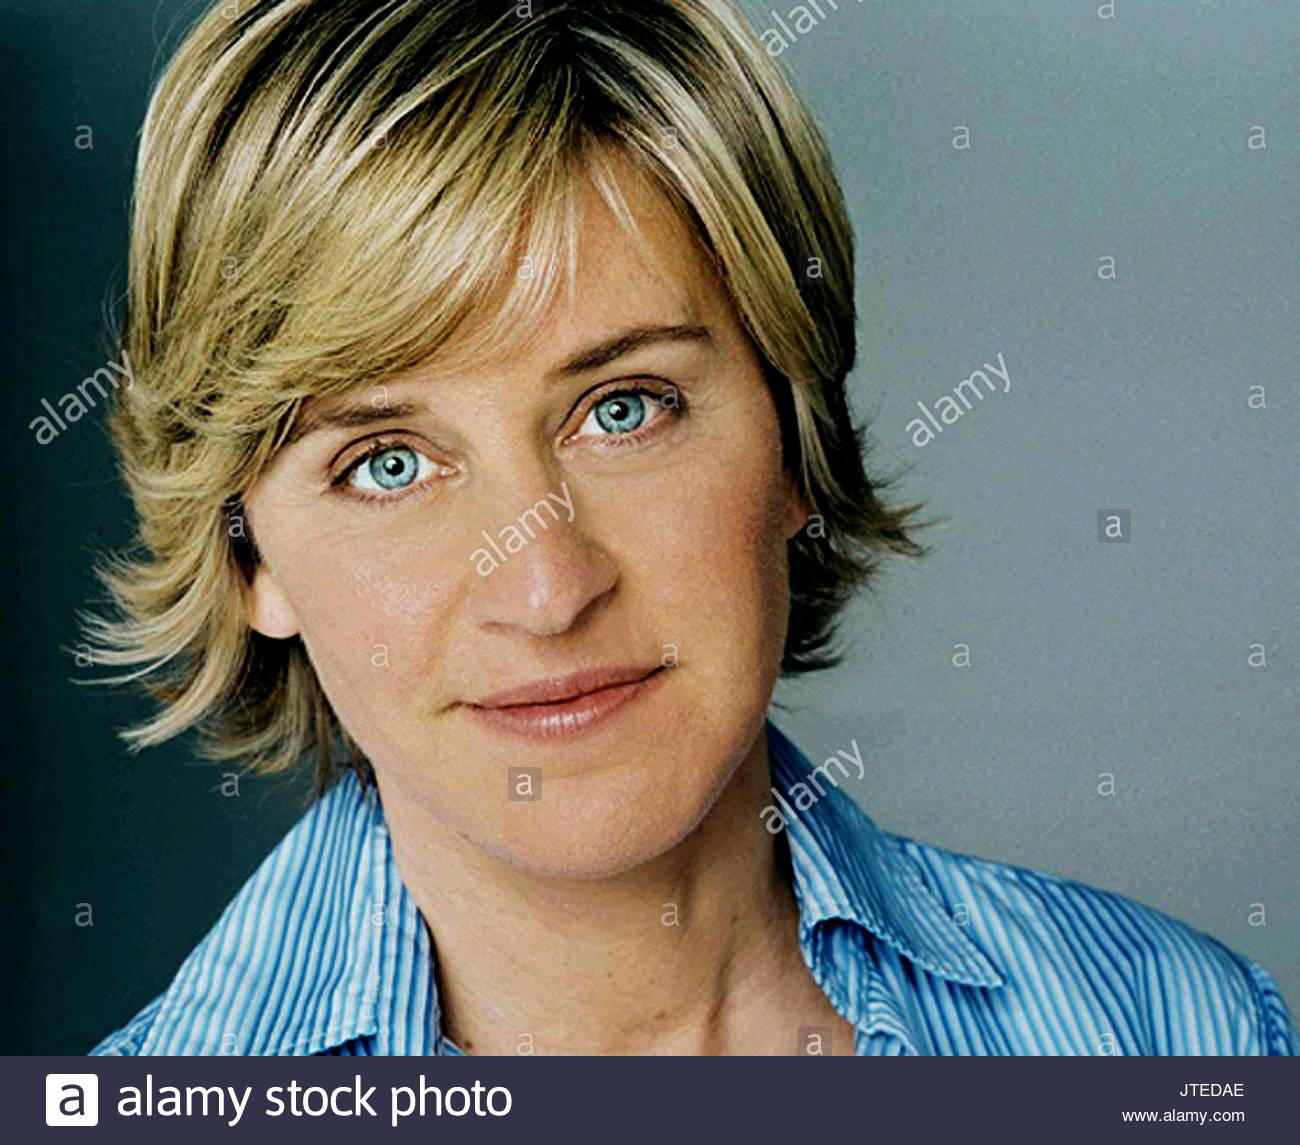 ellen degeneres finding nemo 2003 stock photo 152752502 alamy